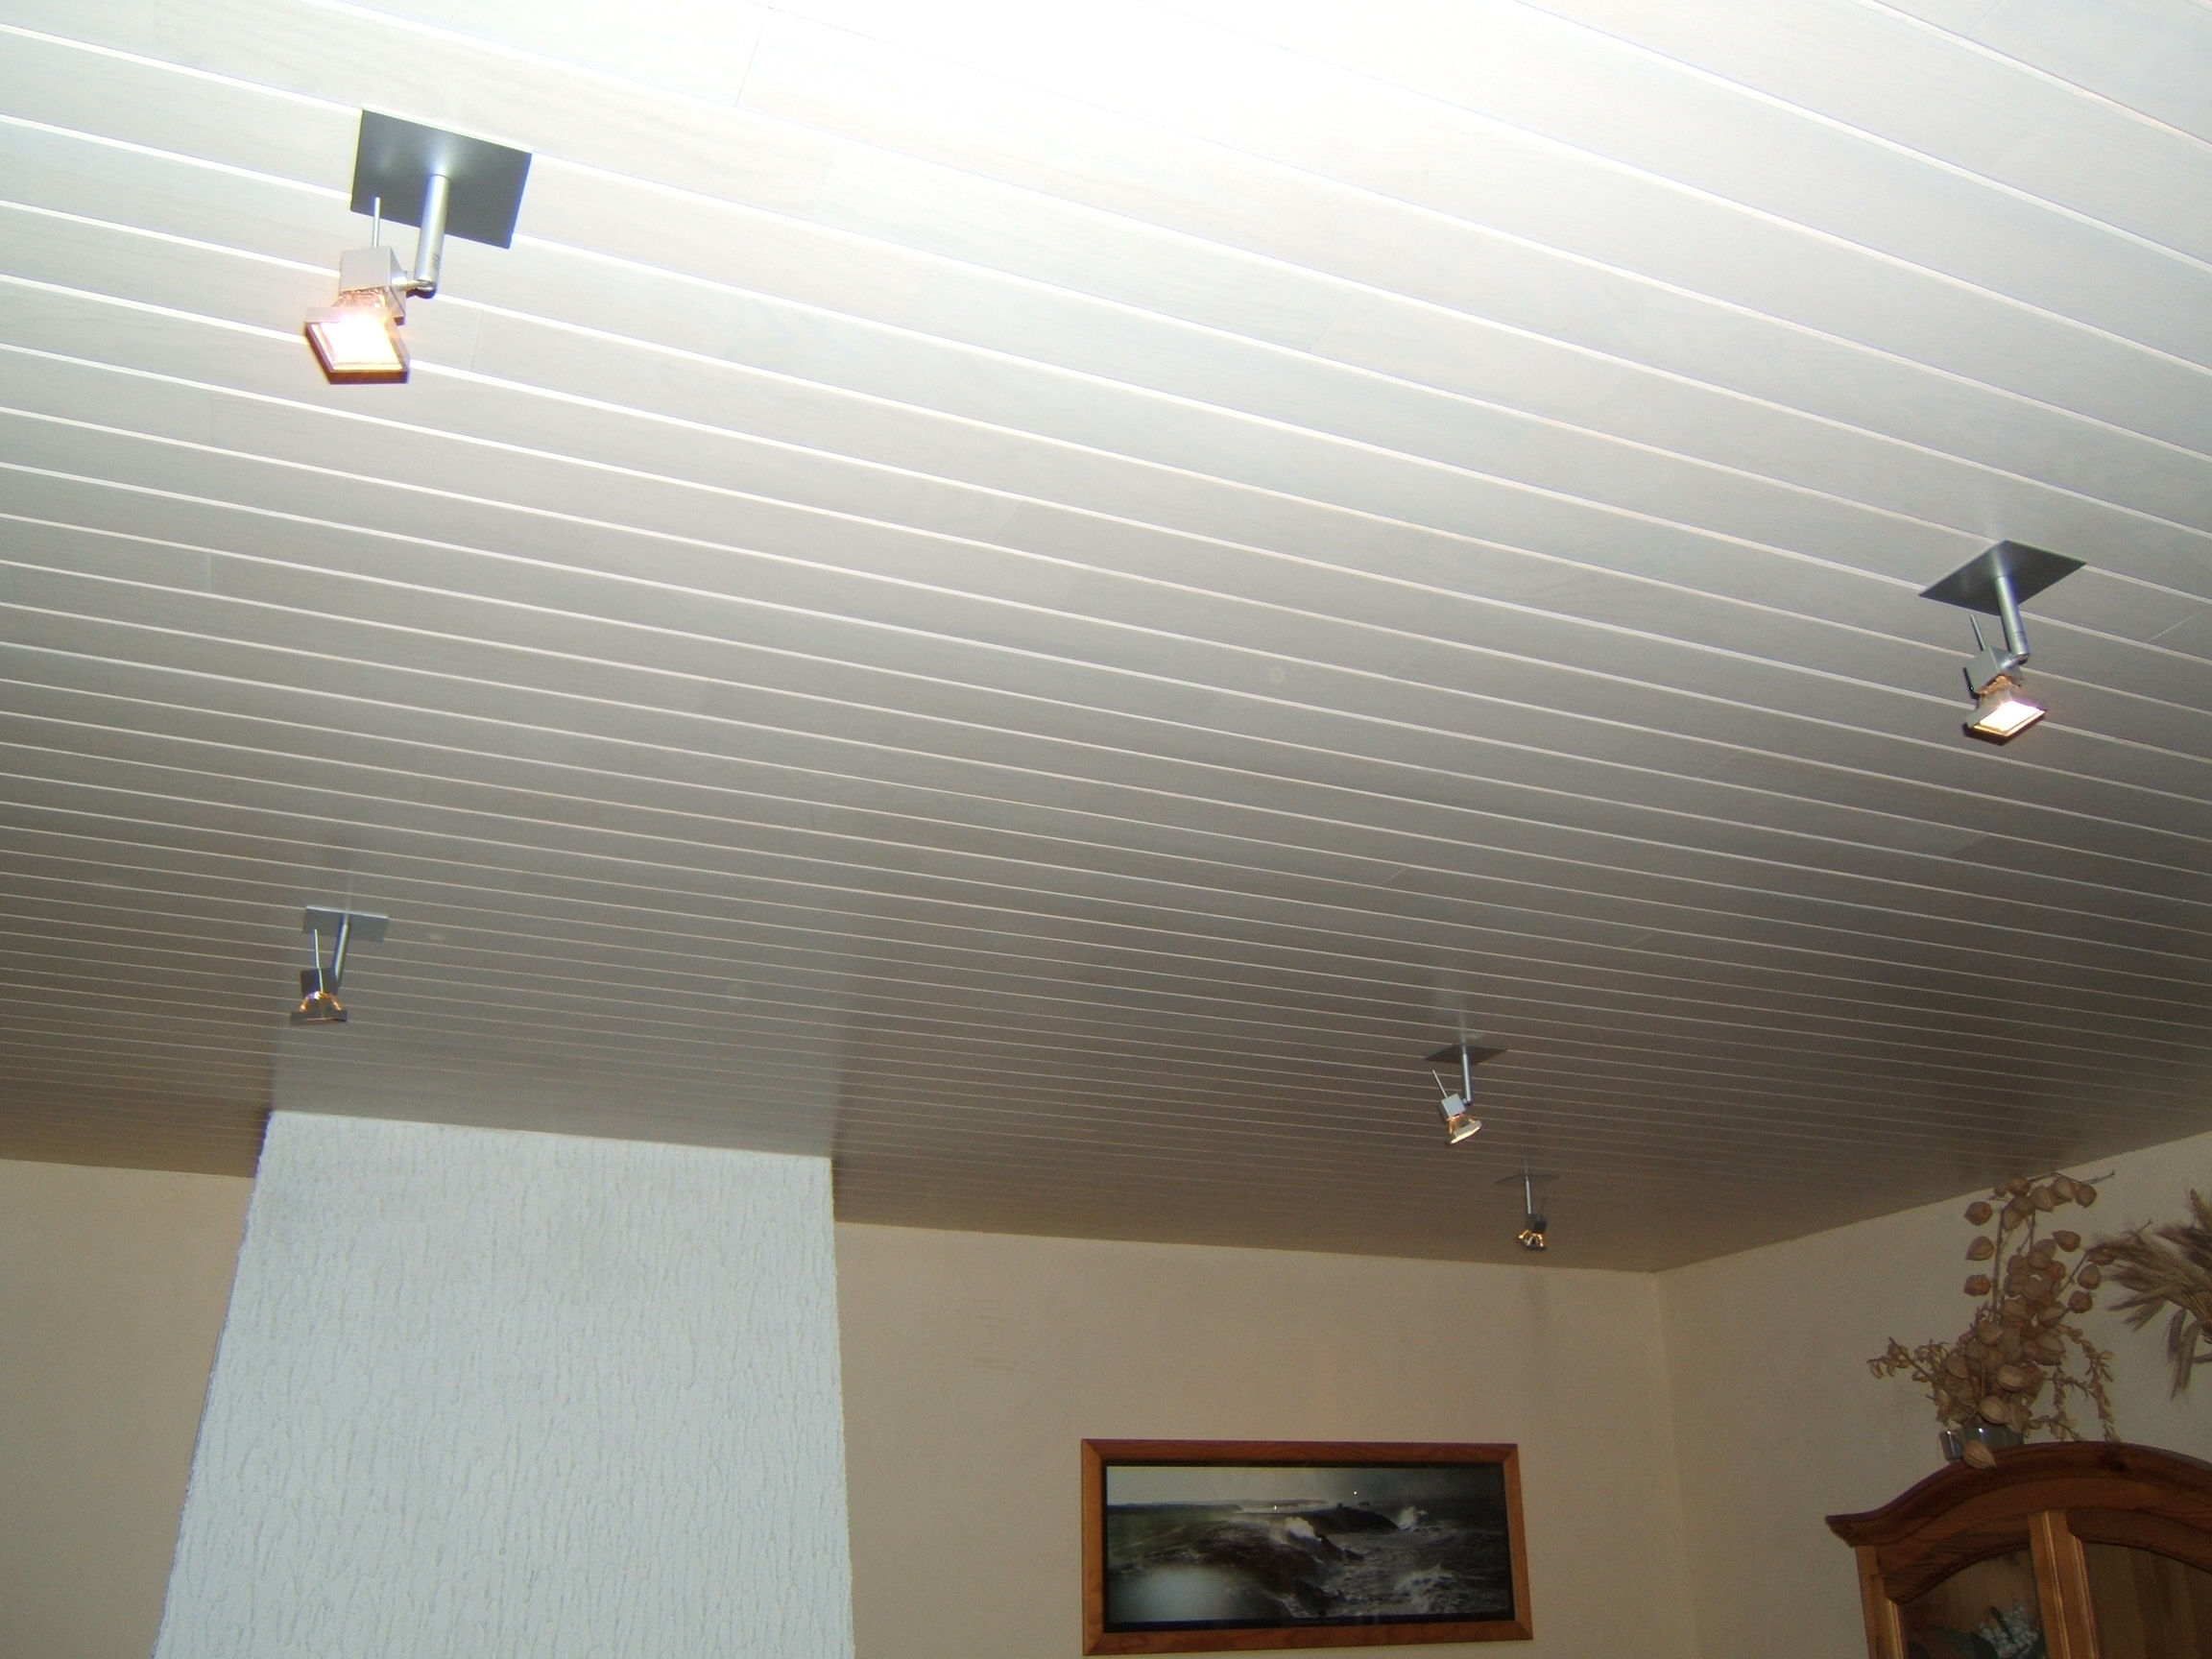 Pose de lambris pvc en soubassement pau estimation devis for Peindre plafond lambris